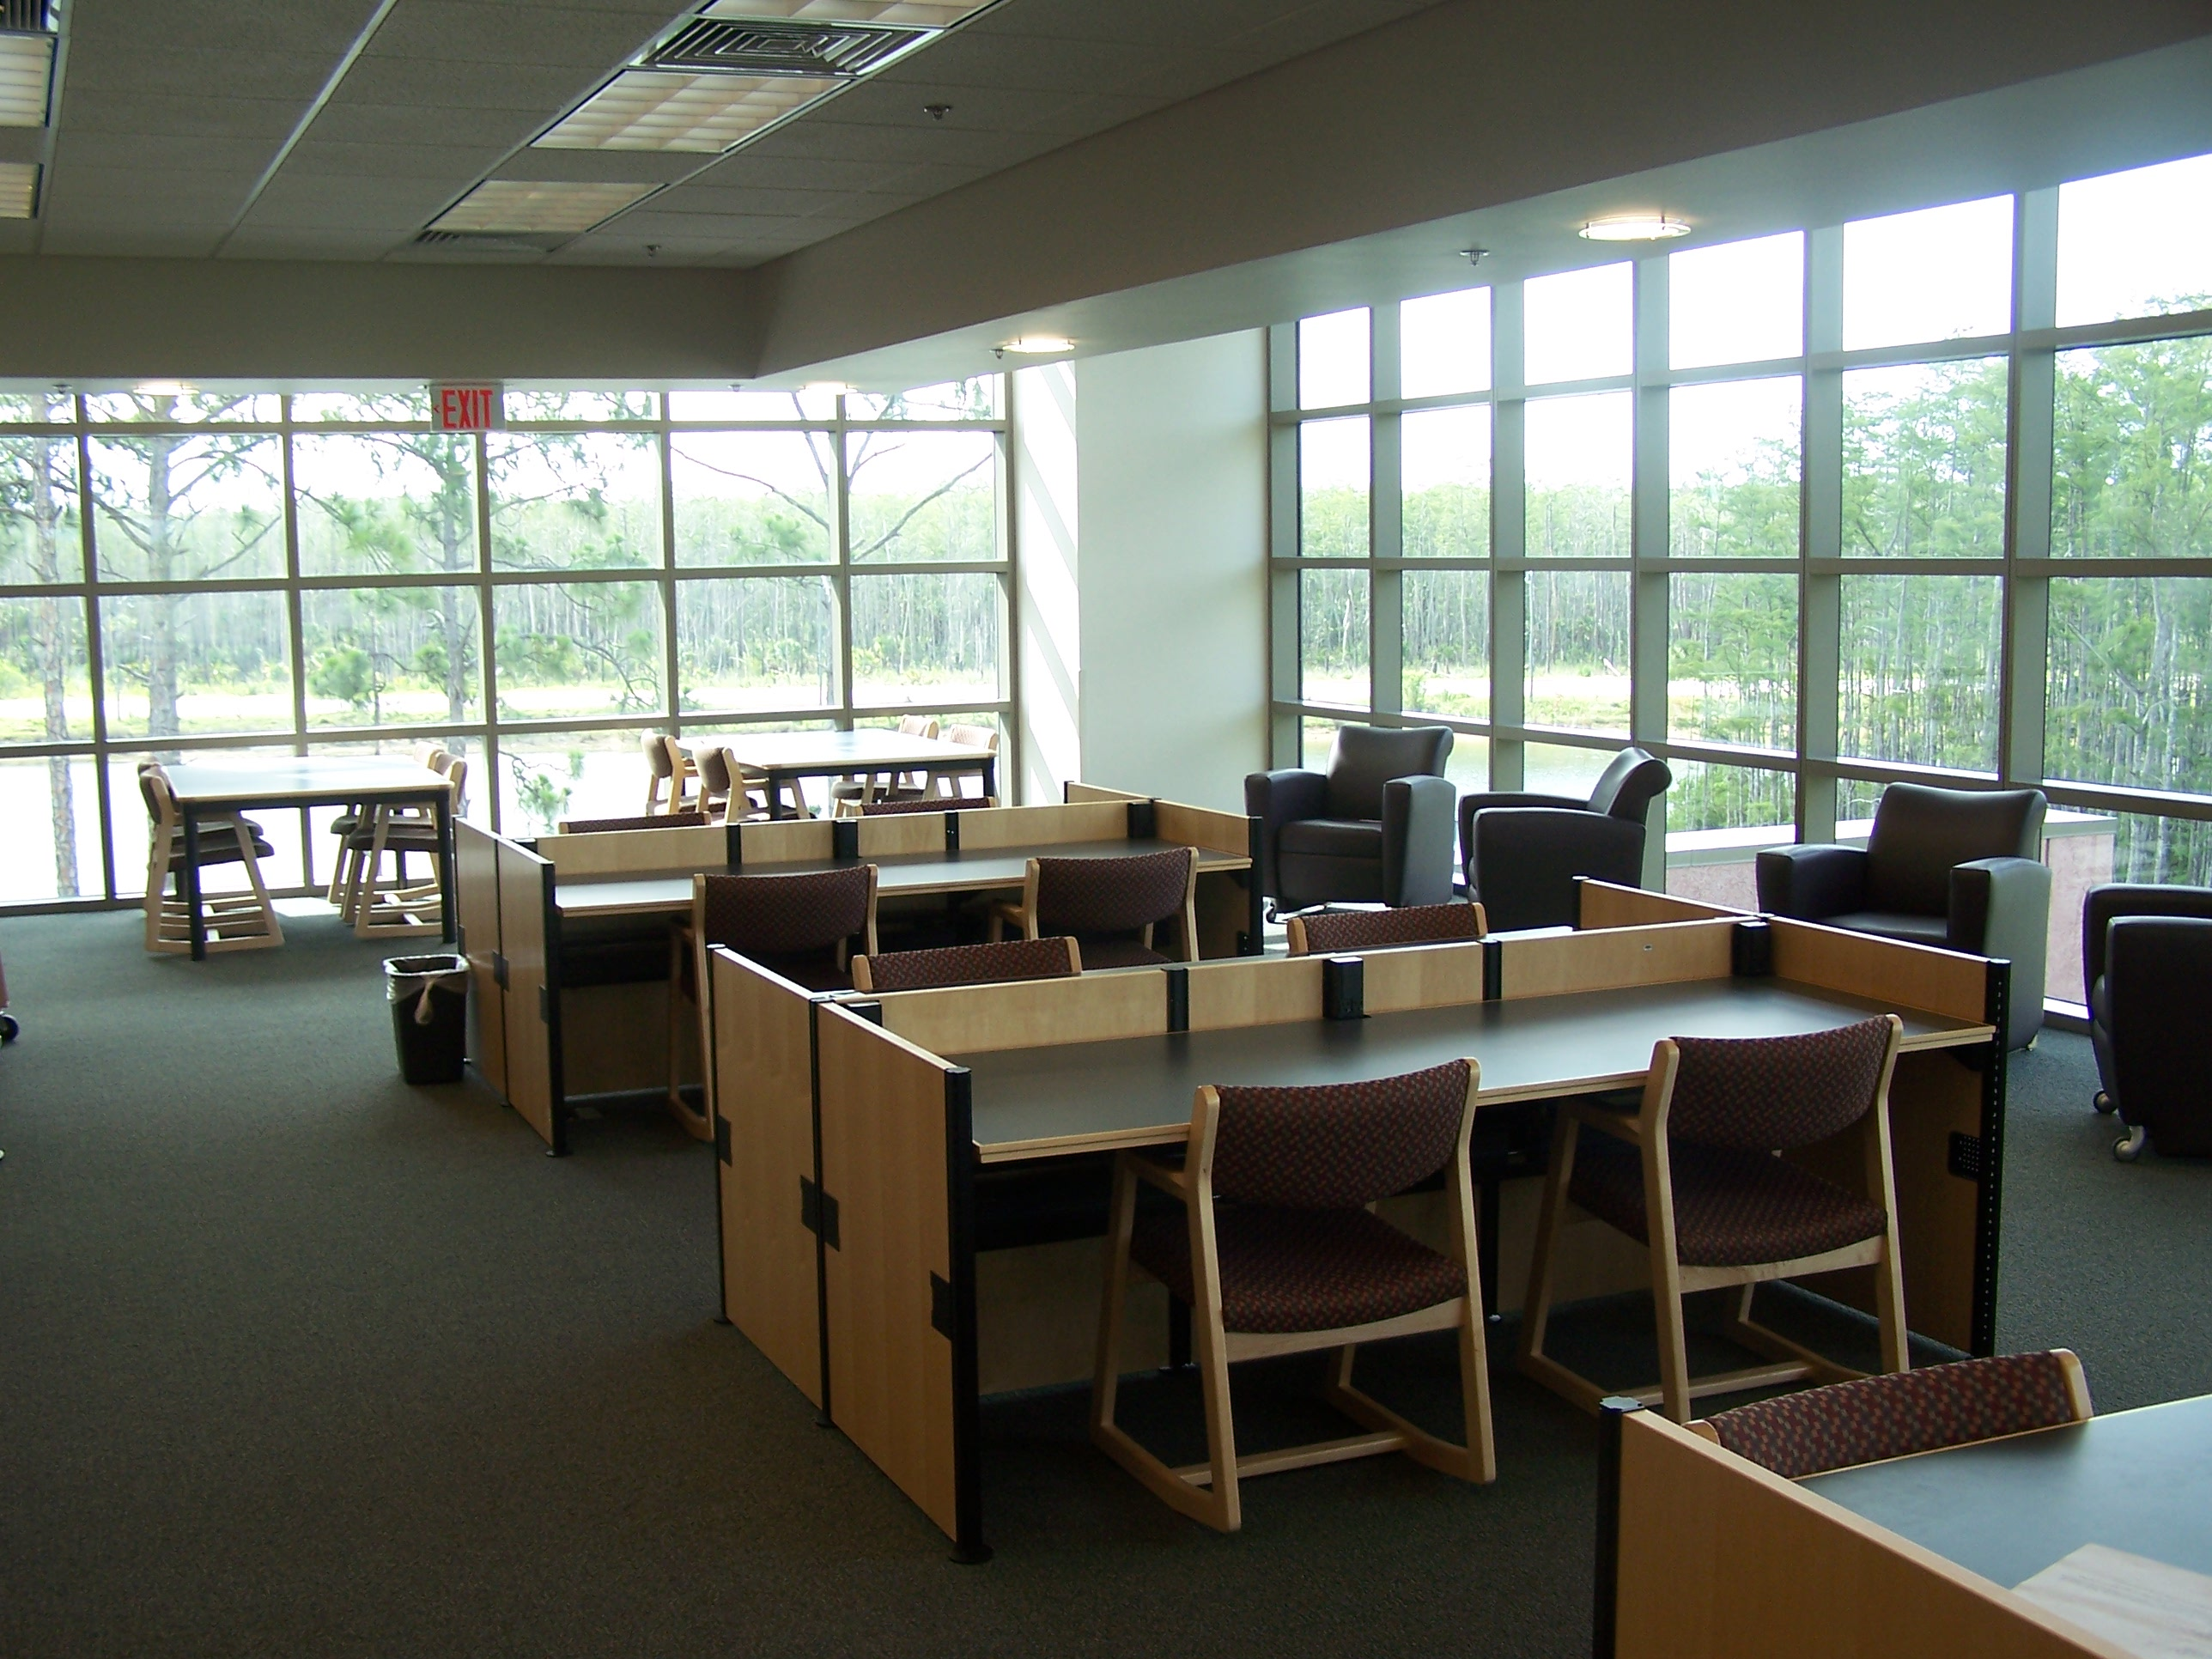 3rd Floor View and Study Tables